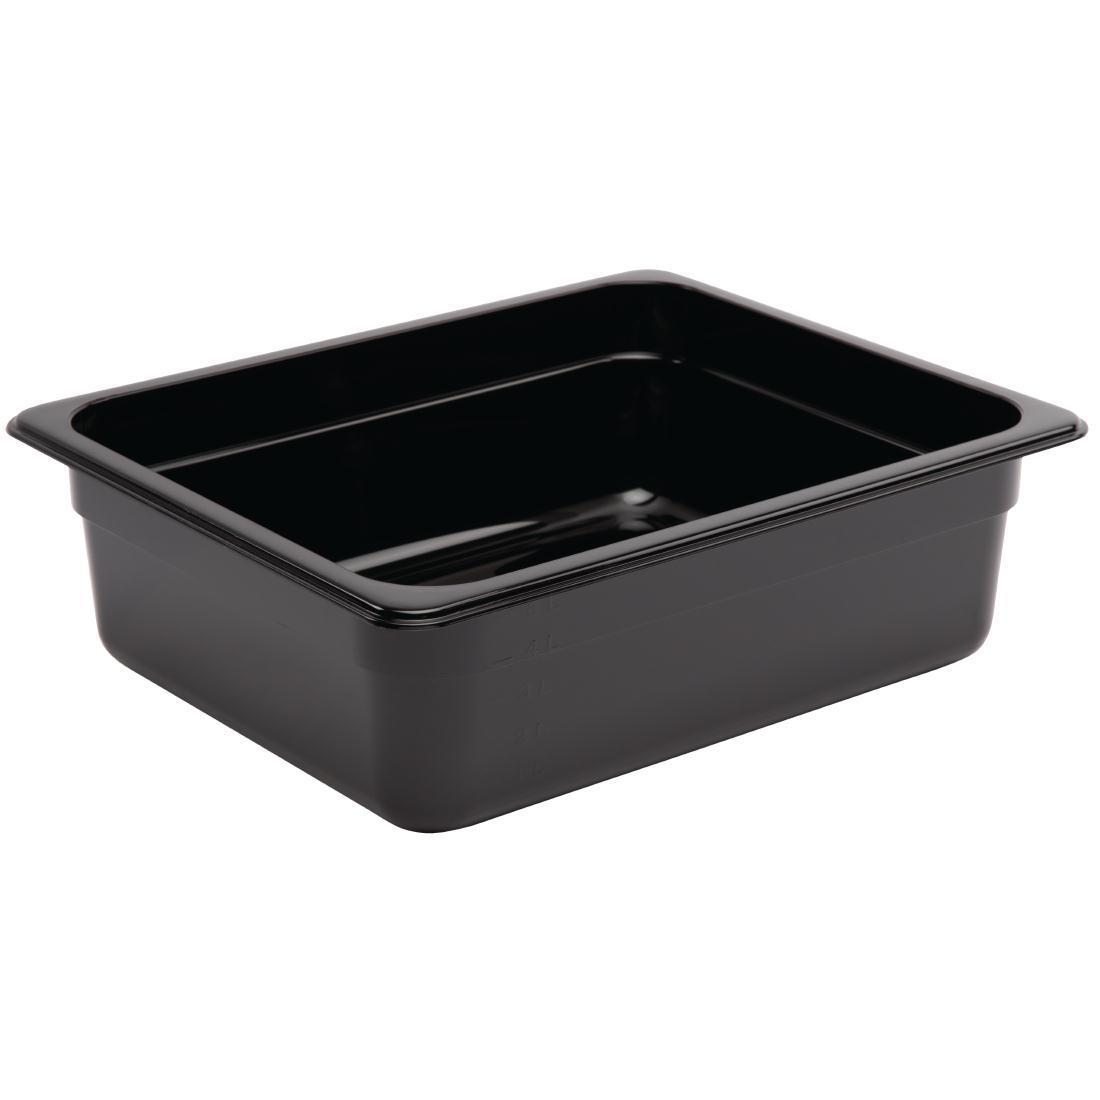 Vogue Polycarbonate 1/2 Gastronorm Container 100mm Black - U459